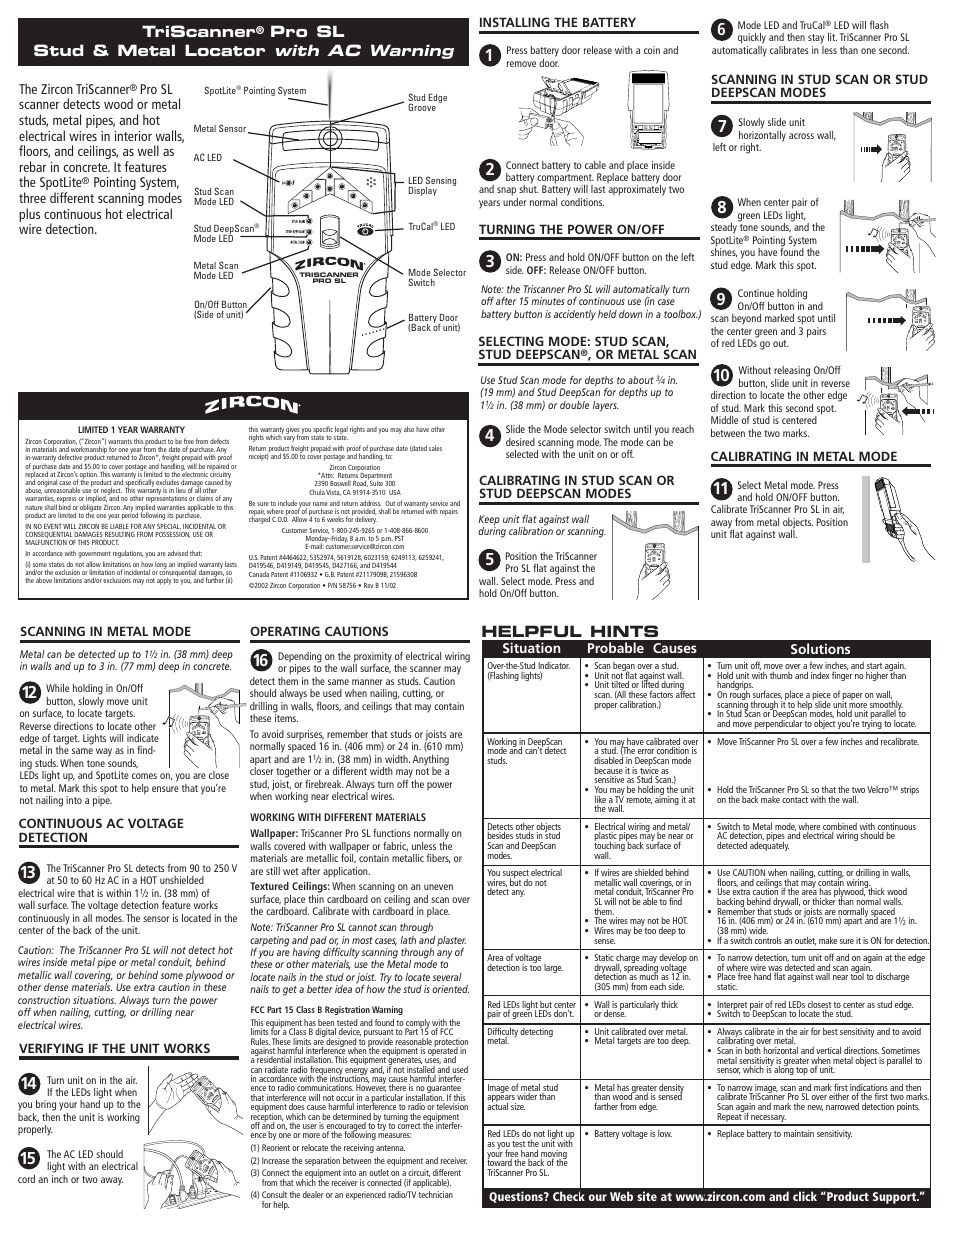 Zircon Pro Sl User Manual 2 Pages Locating Electrical Wiring Behind Walls